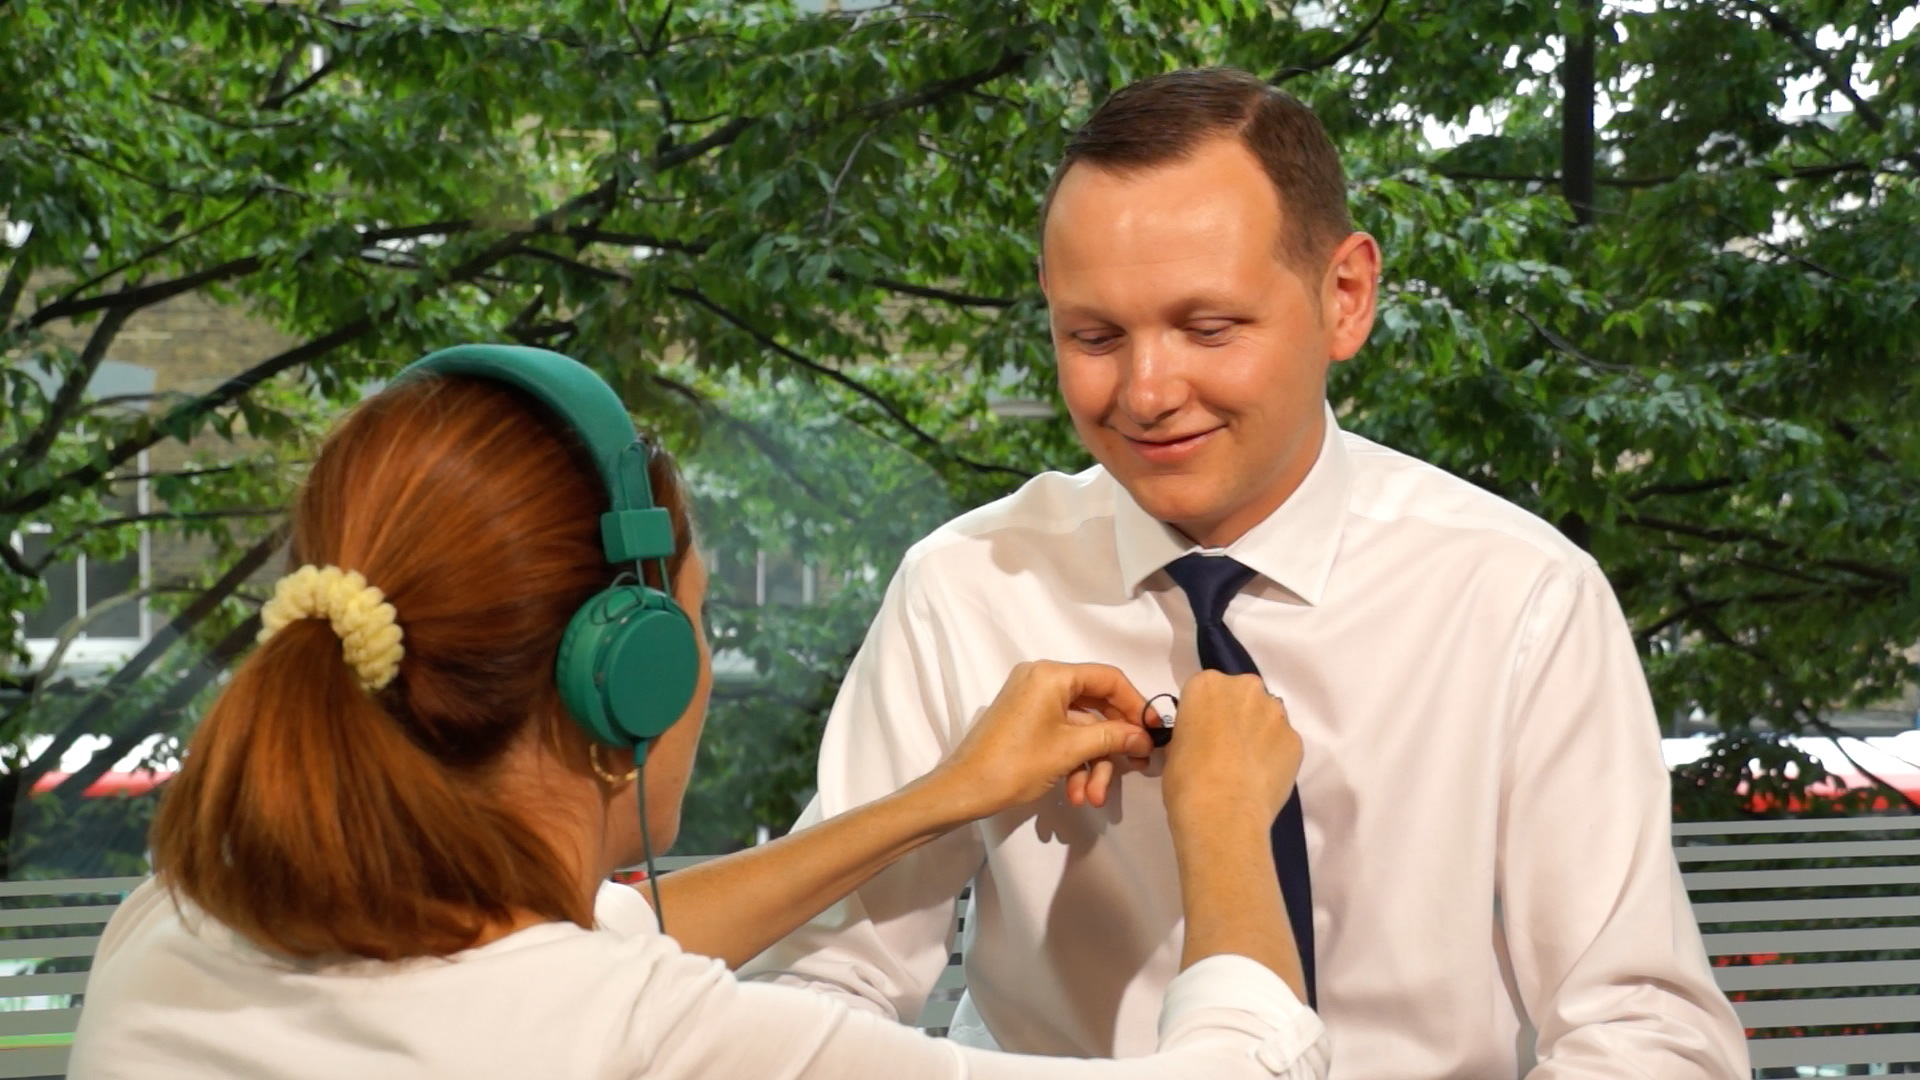 Adjusting microphone during the shoot